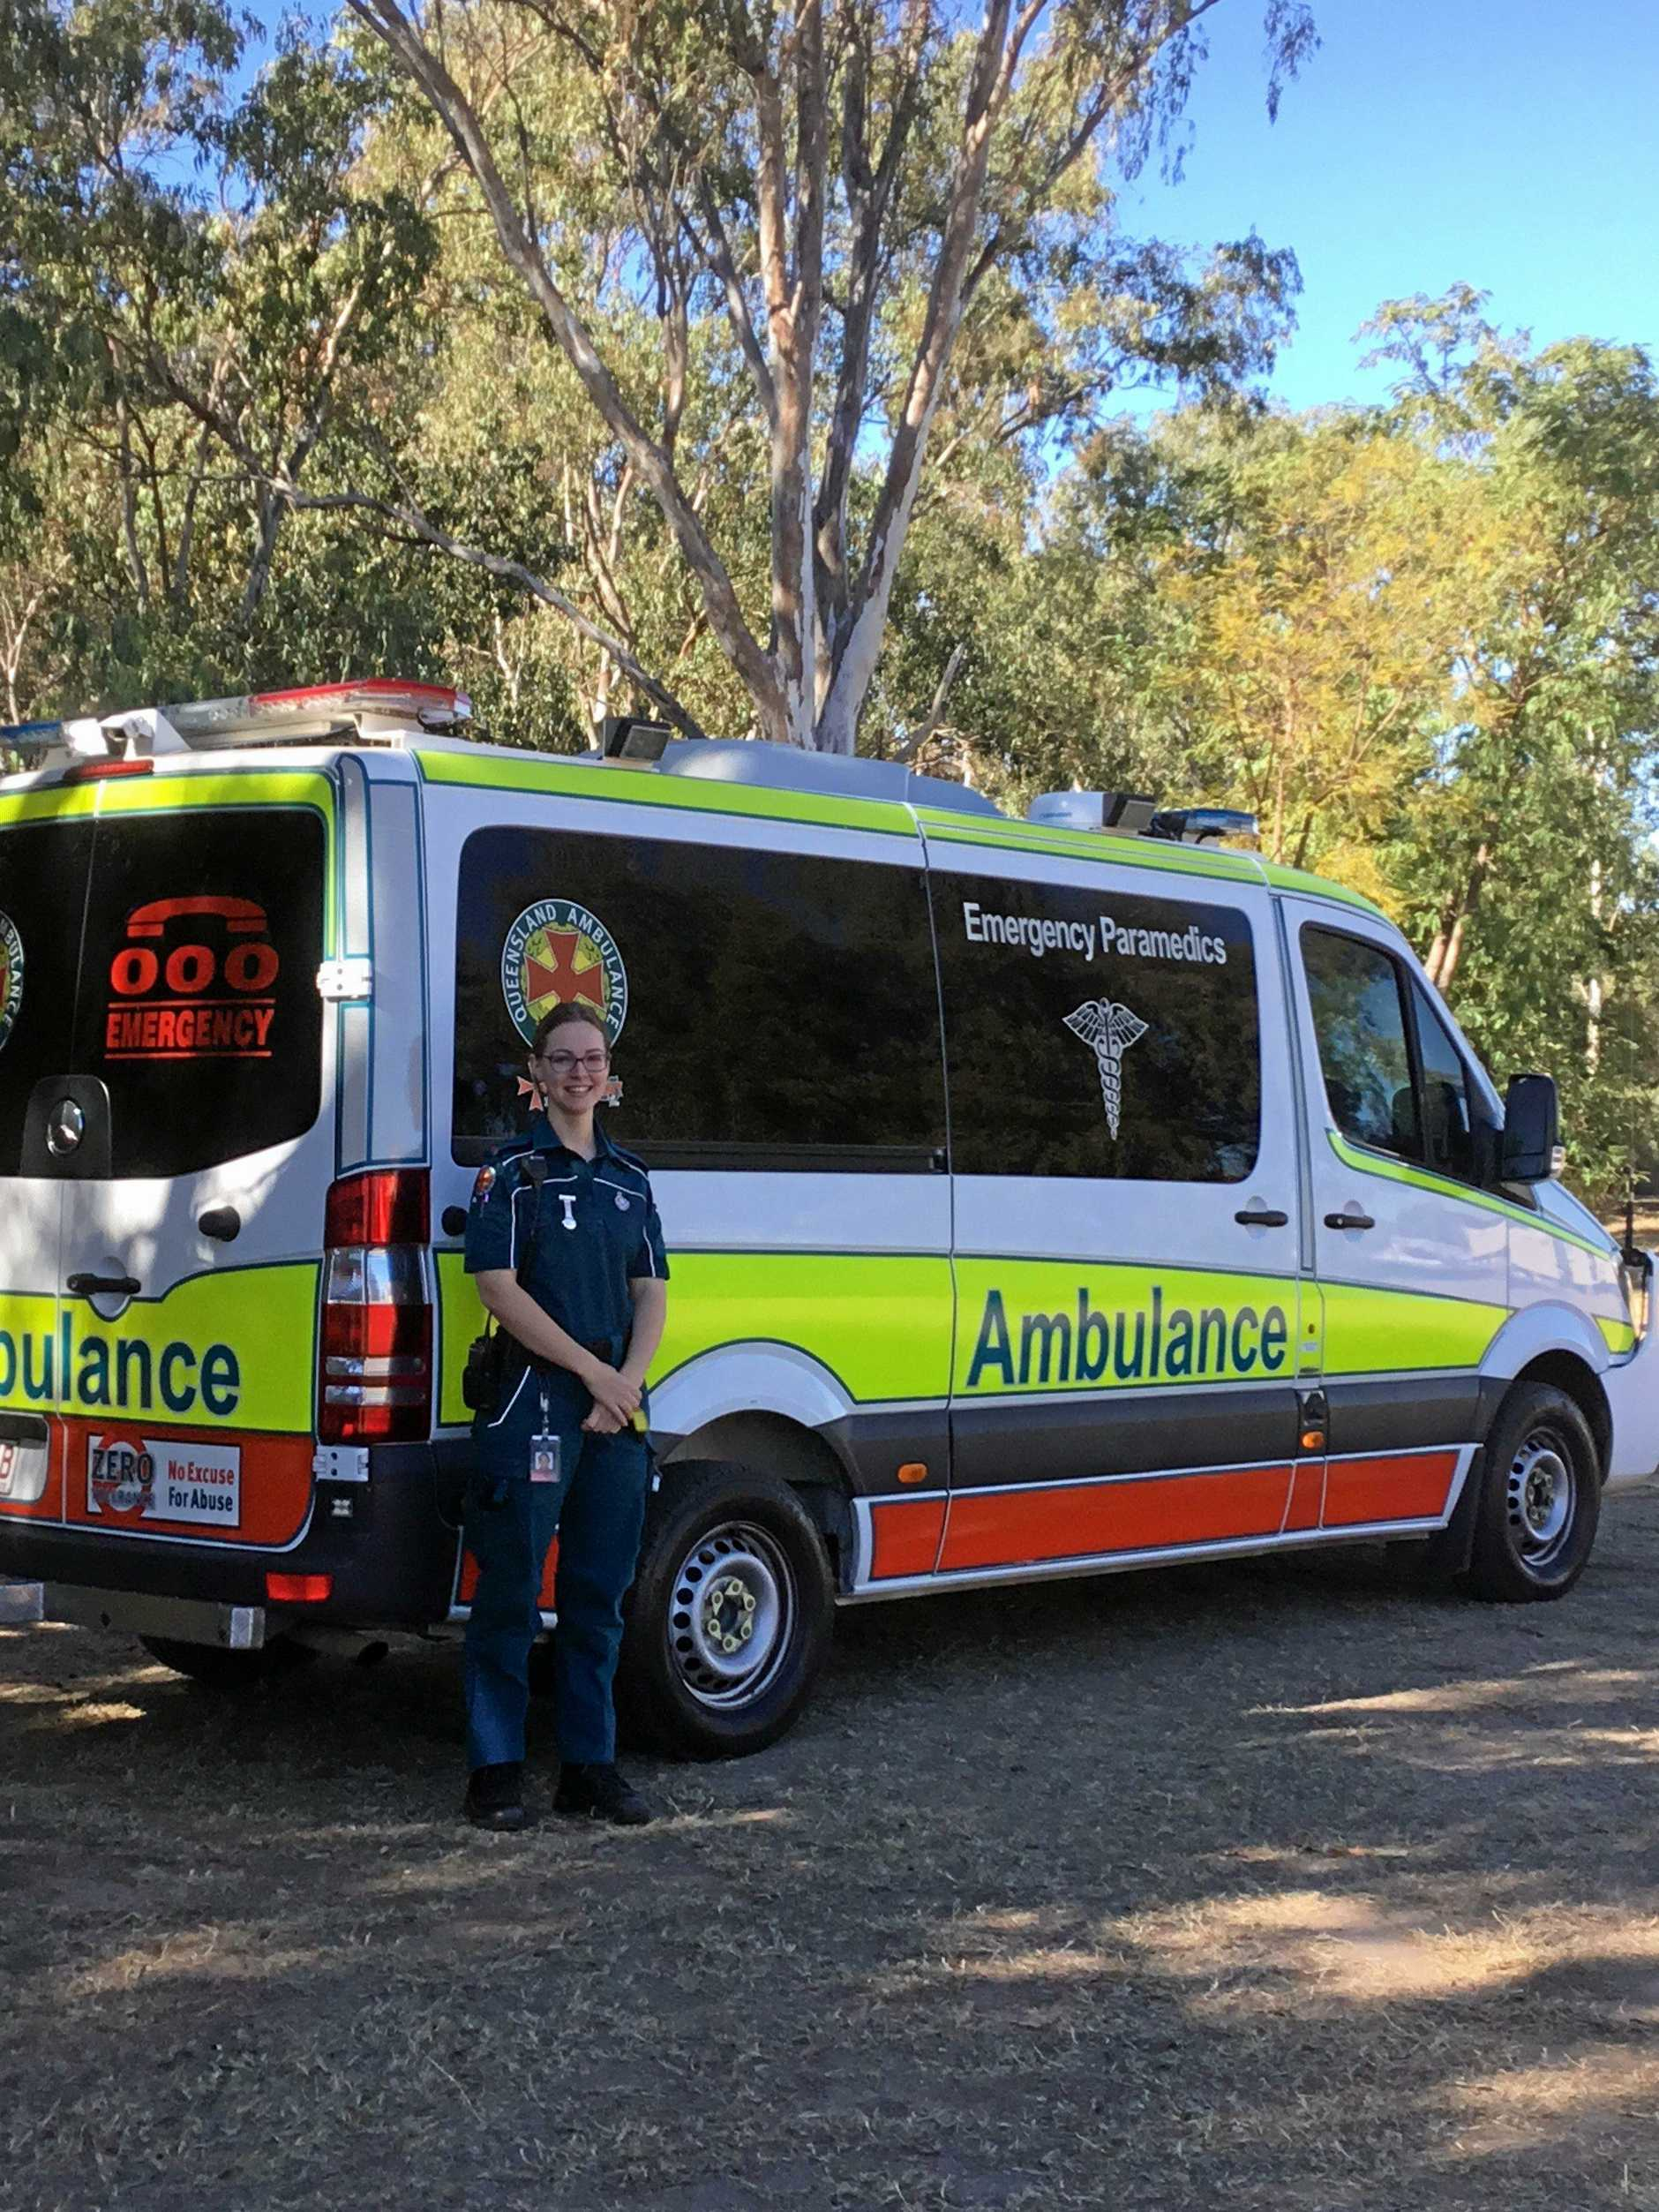 HEADING WEST: Jodie McCallum with the Queensland Ambulance Service in Roma will be going to Augathella for work next week.